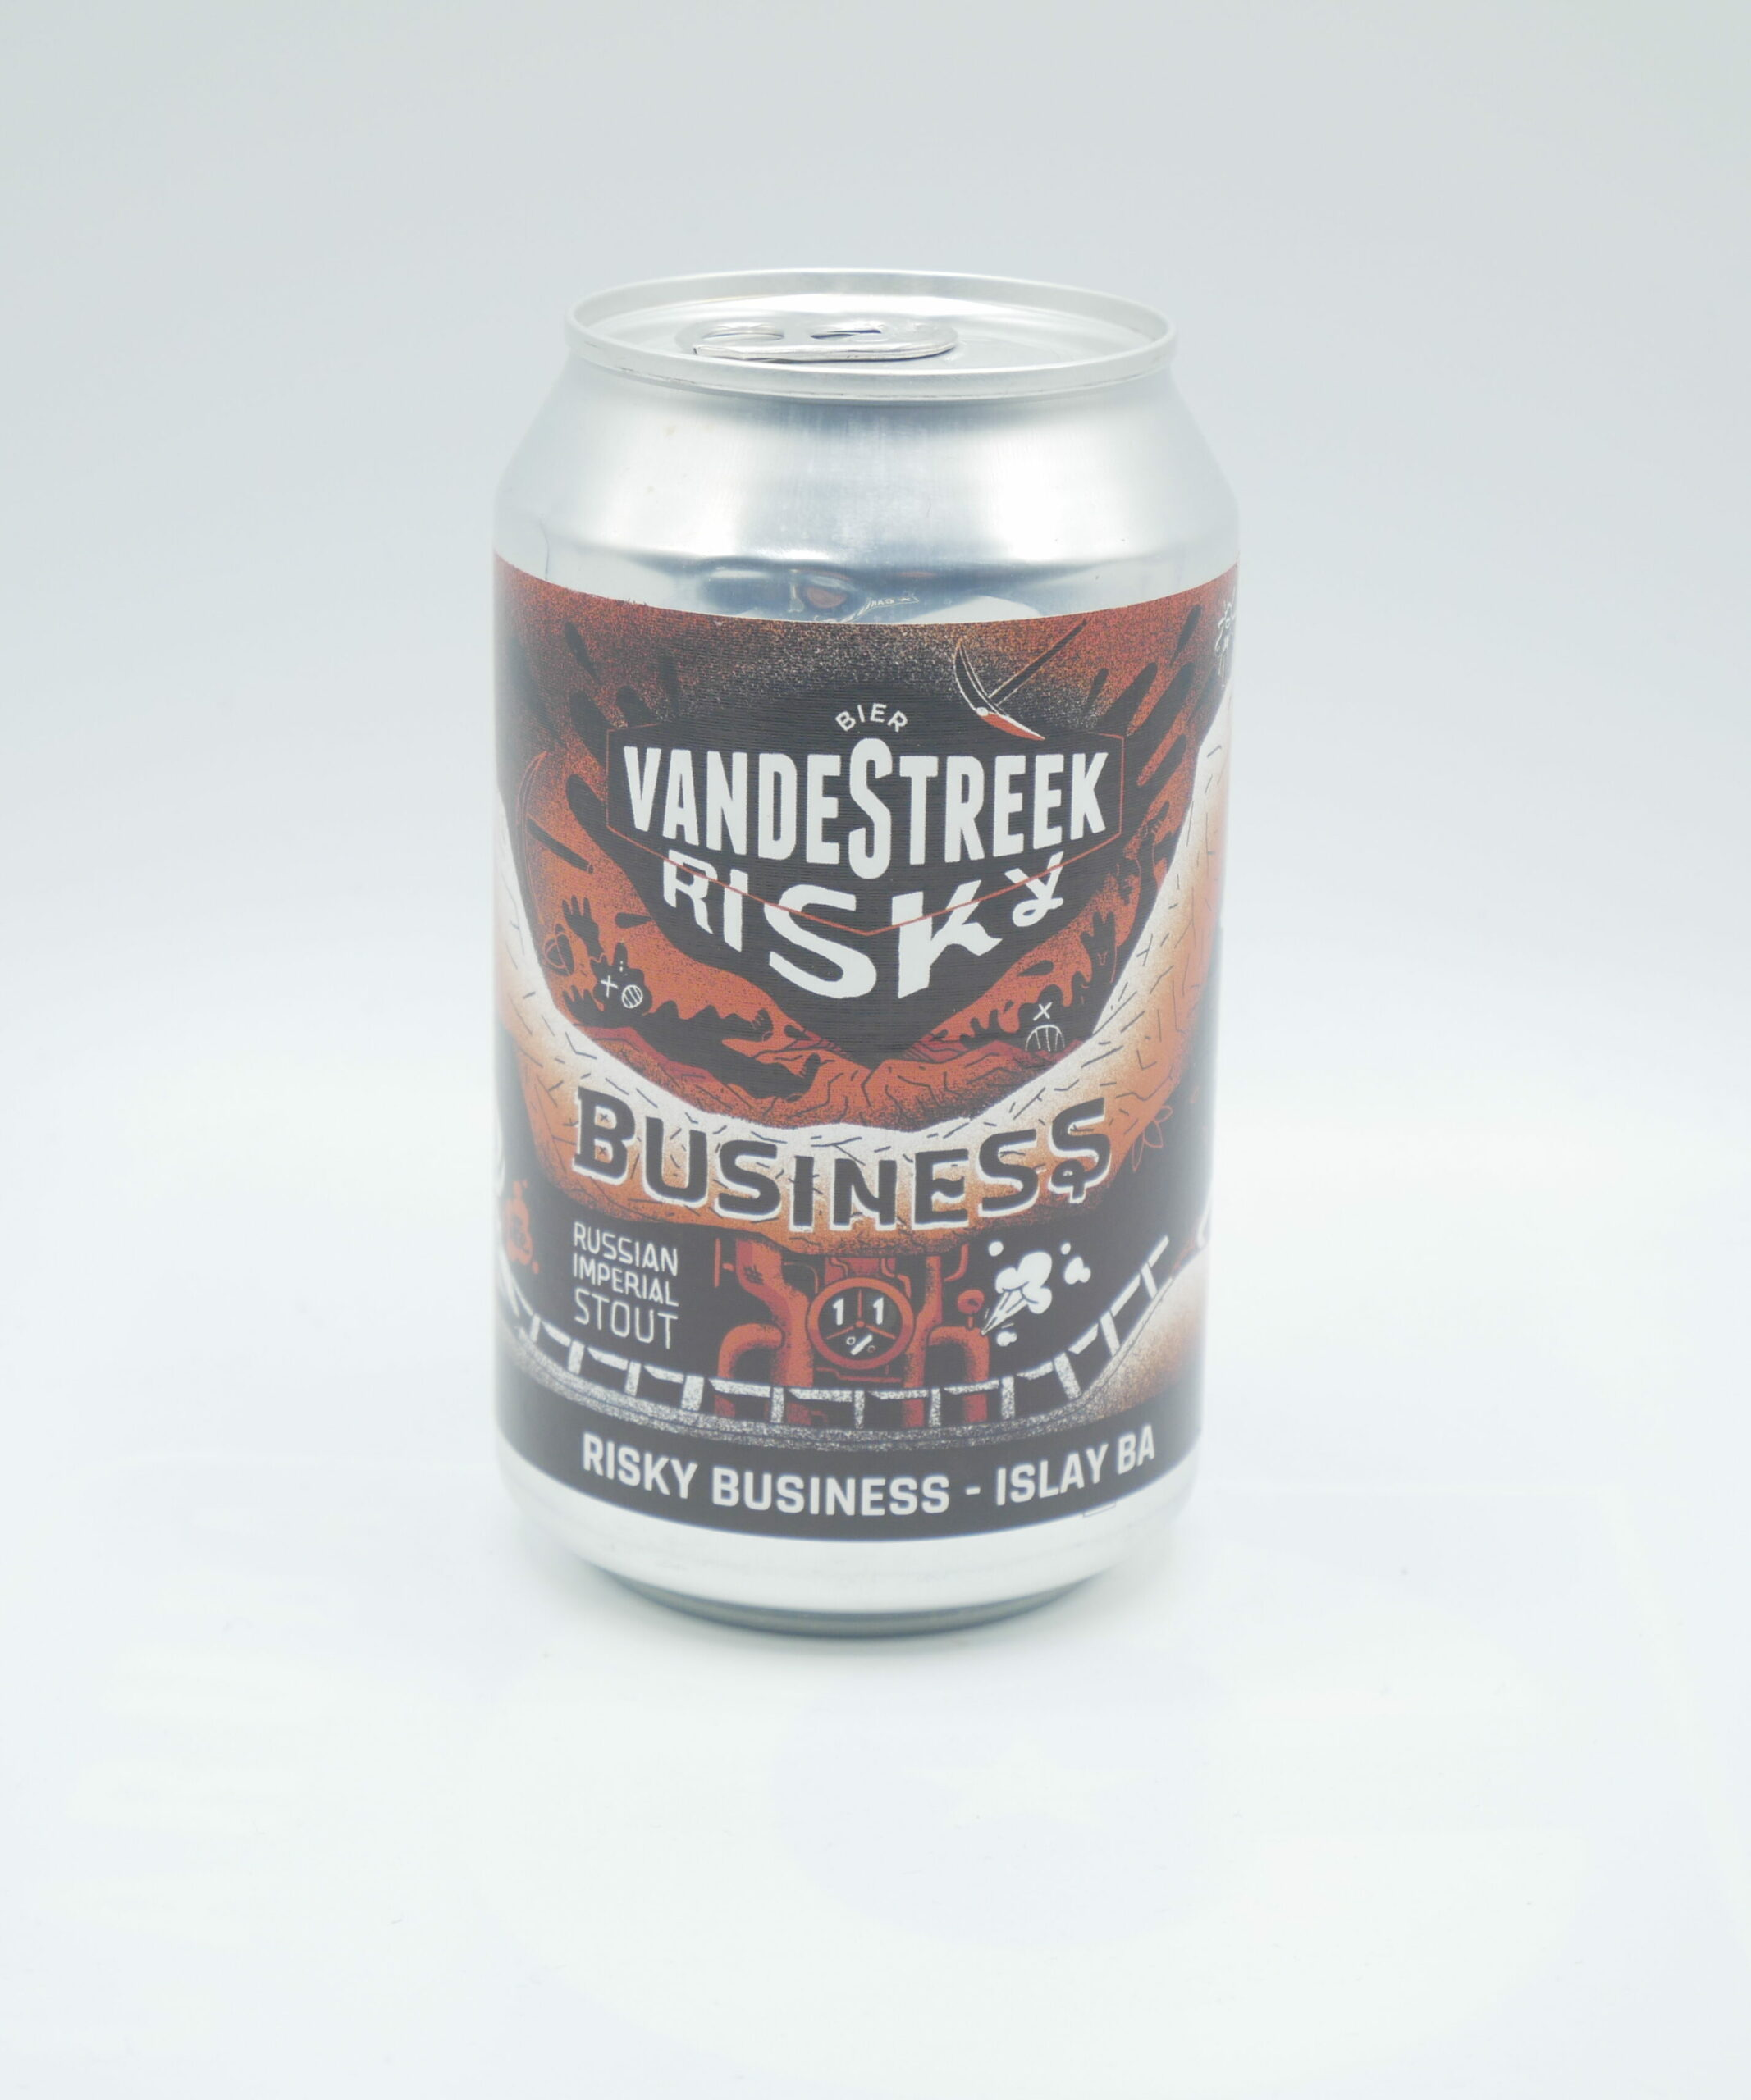 Image Vandestreek Risky business Islay Ba Can